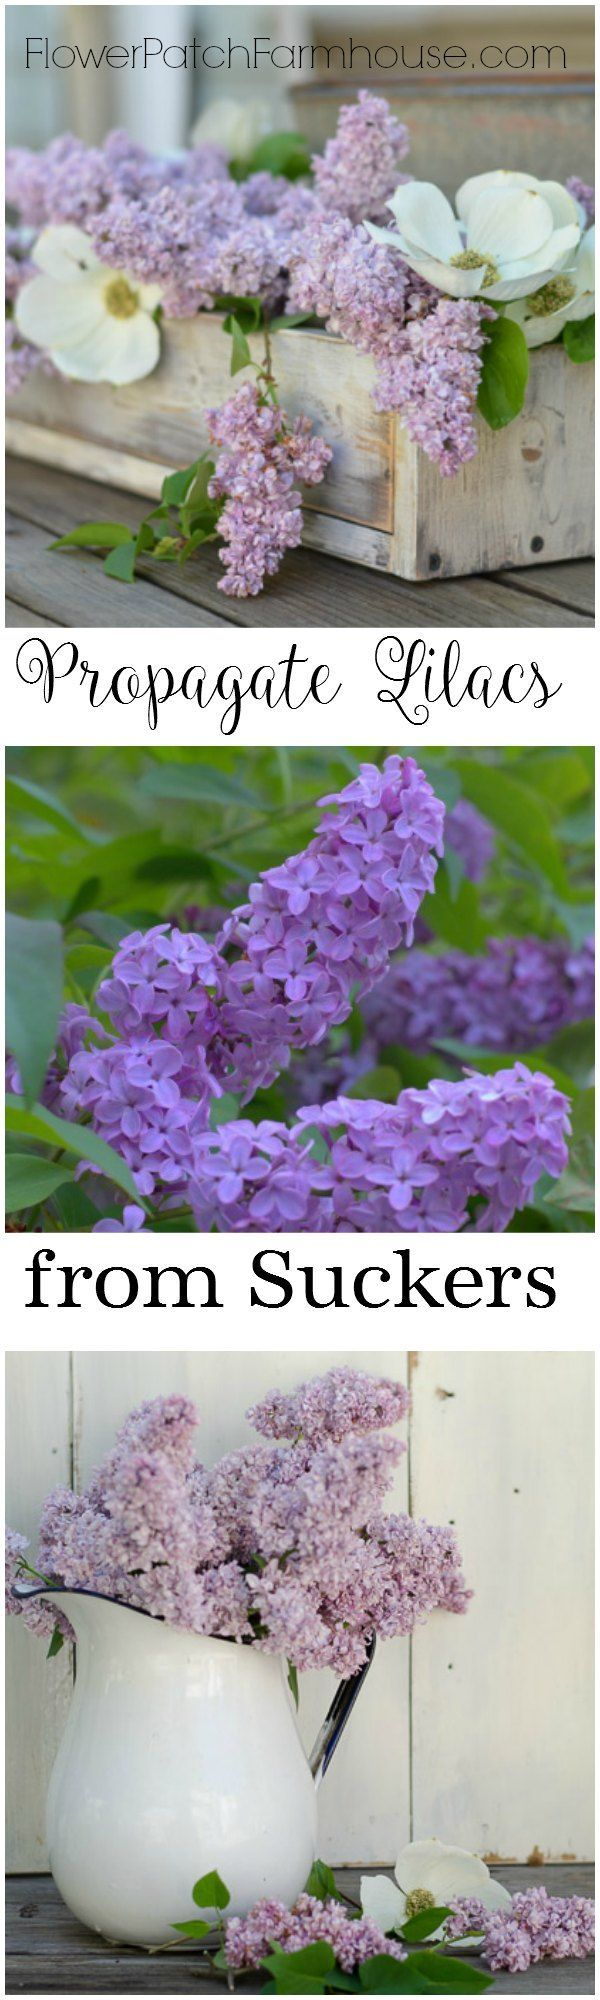 You Can Propagate Lilacs From Suckers Spring Garden Flowers Lilac Bushes Garden Flowers Perennials